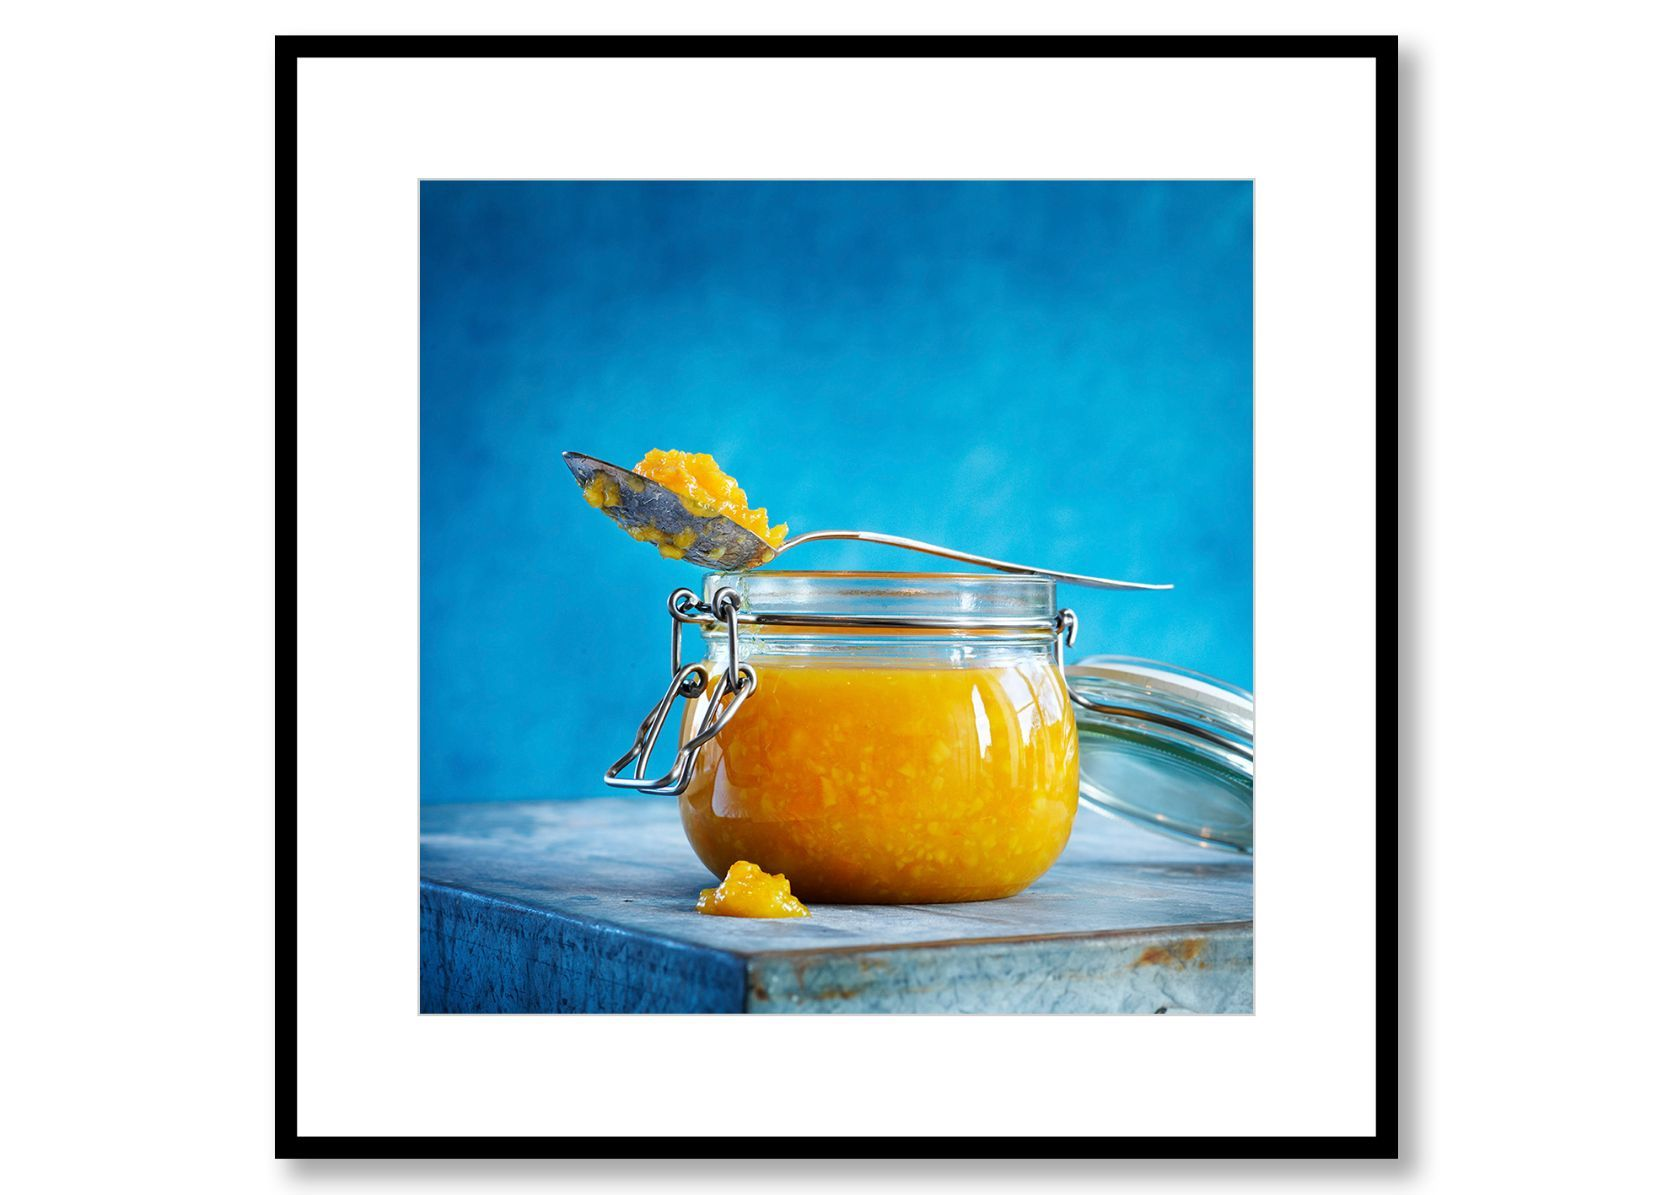 Orange marmalade. Food Art. Prints for sale. Photo by Fredrik Rege